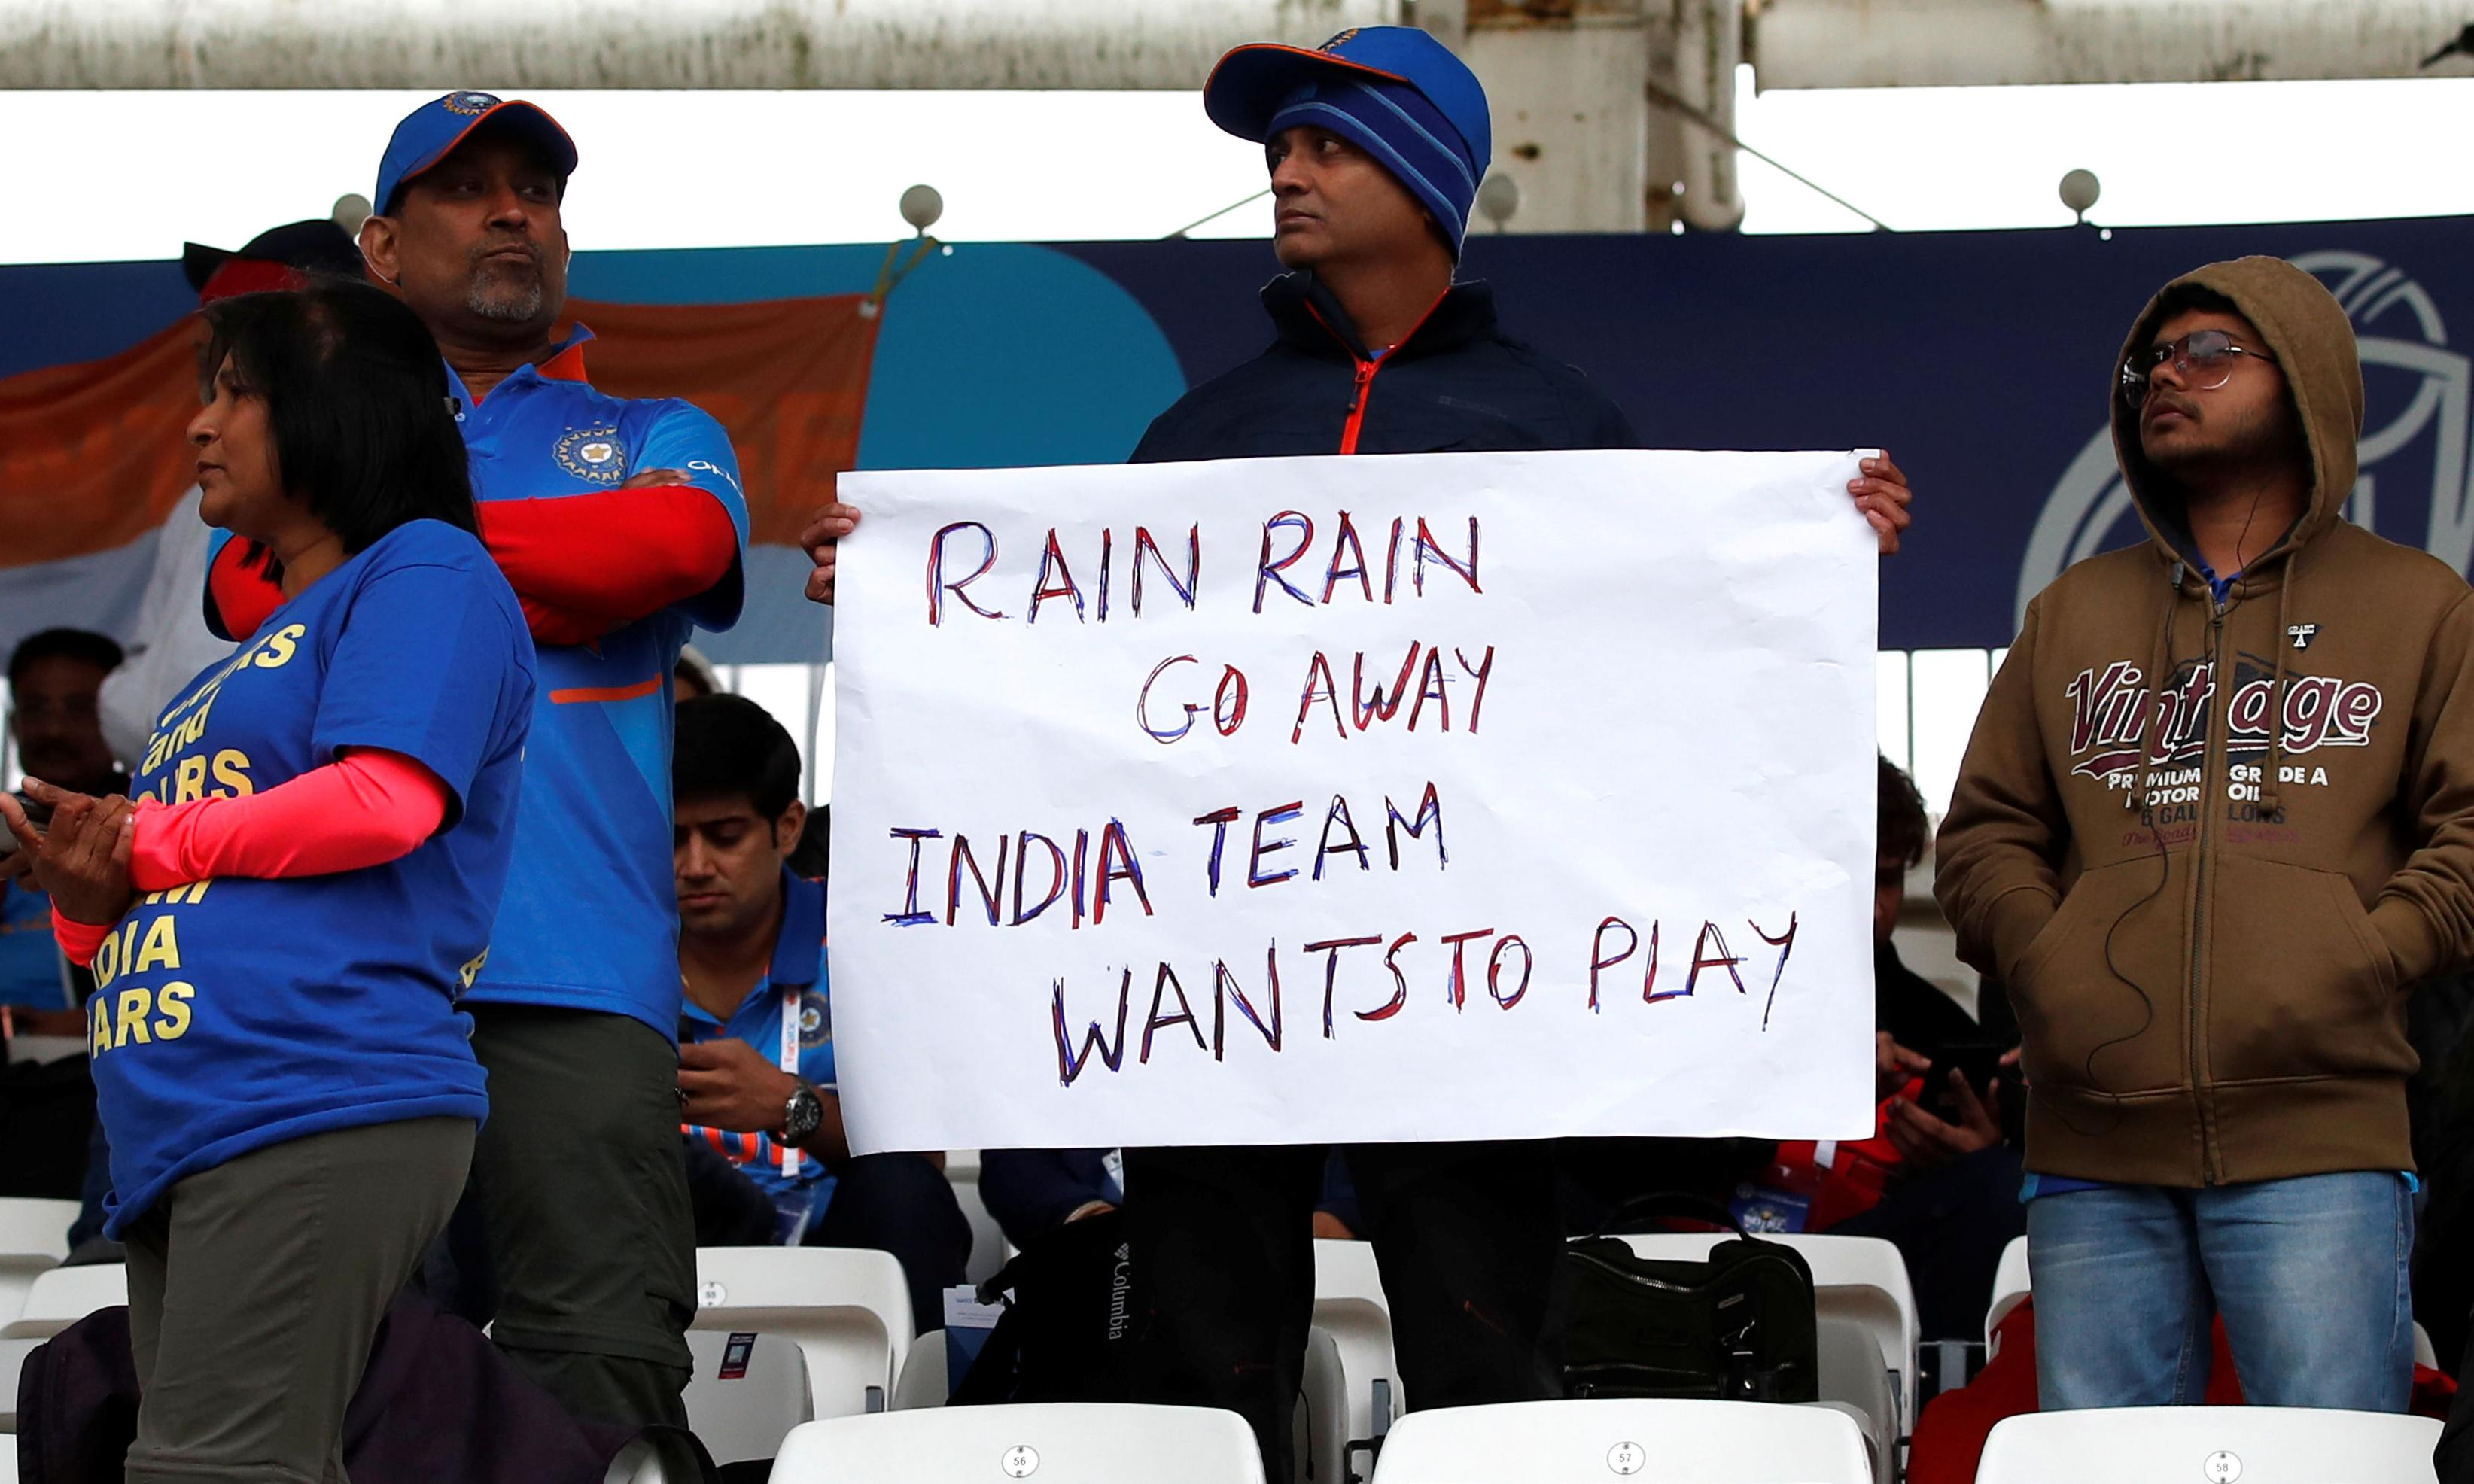 Cricket World Cup's summer dream is turning into a washout nightmare